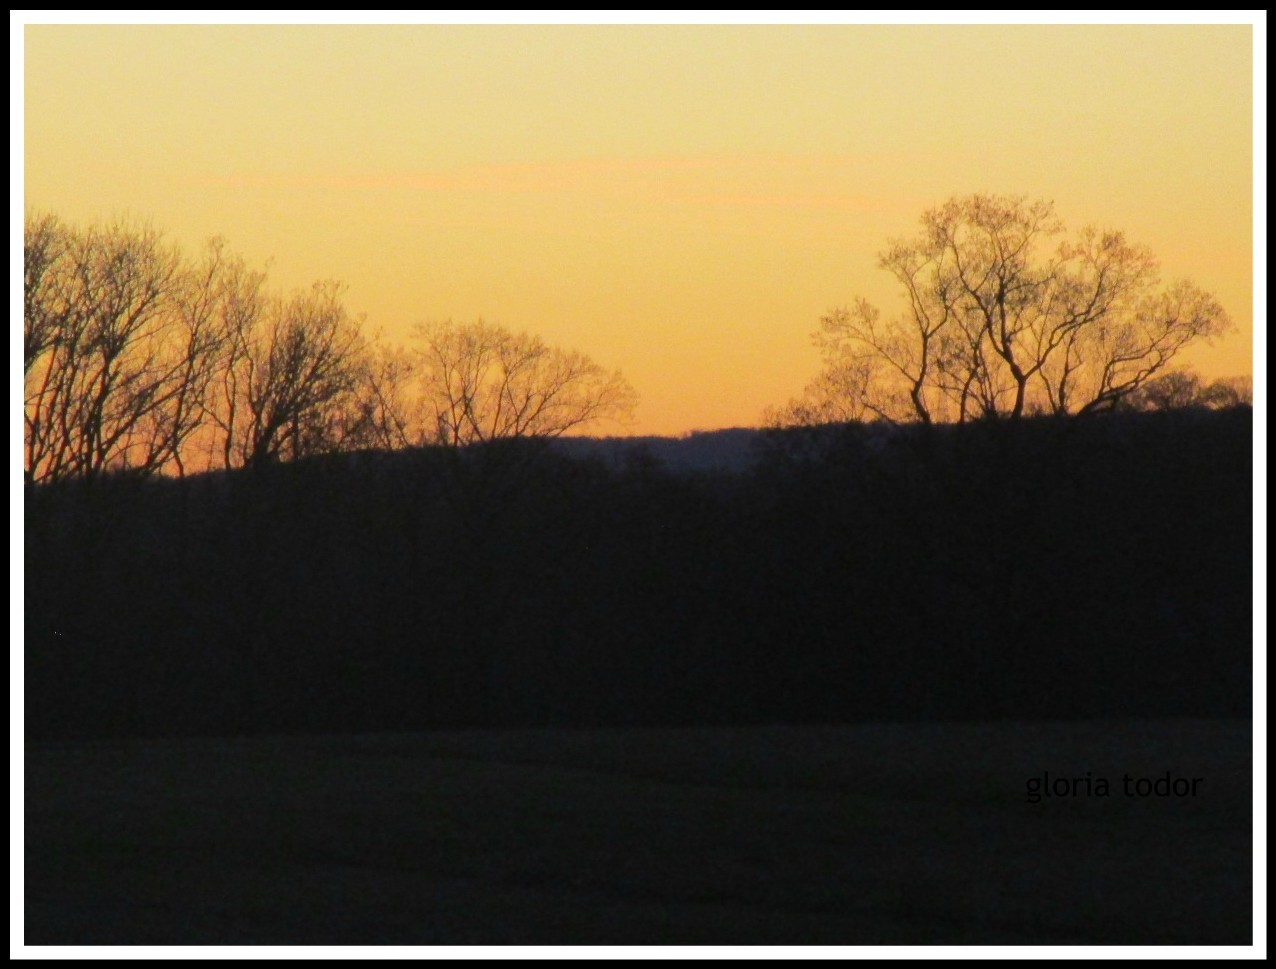 Valley Forge at Dusk